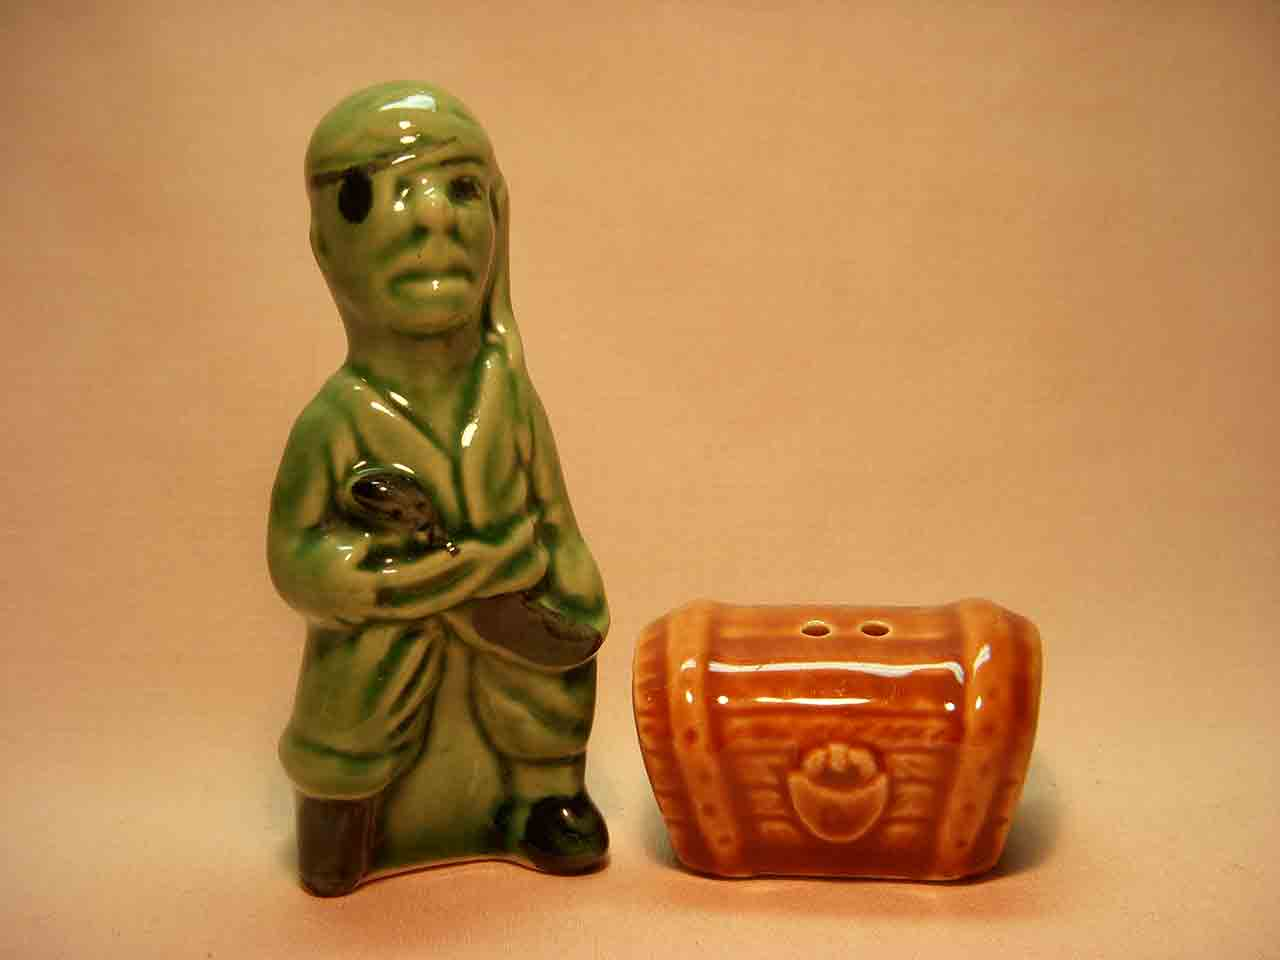 Go with pirate with treasure chest salt and pepper shaker